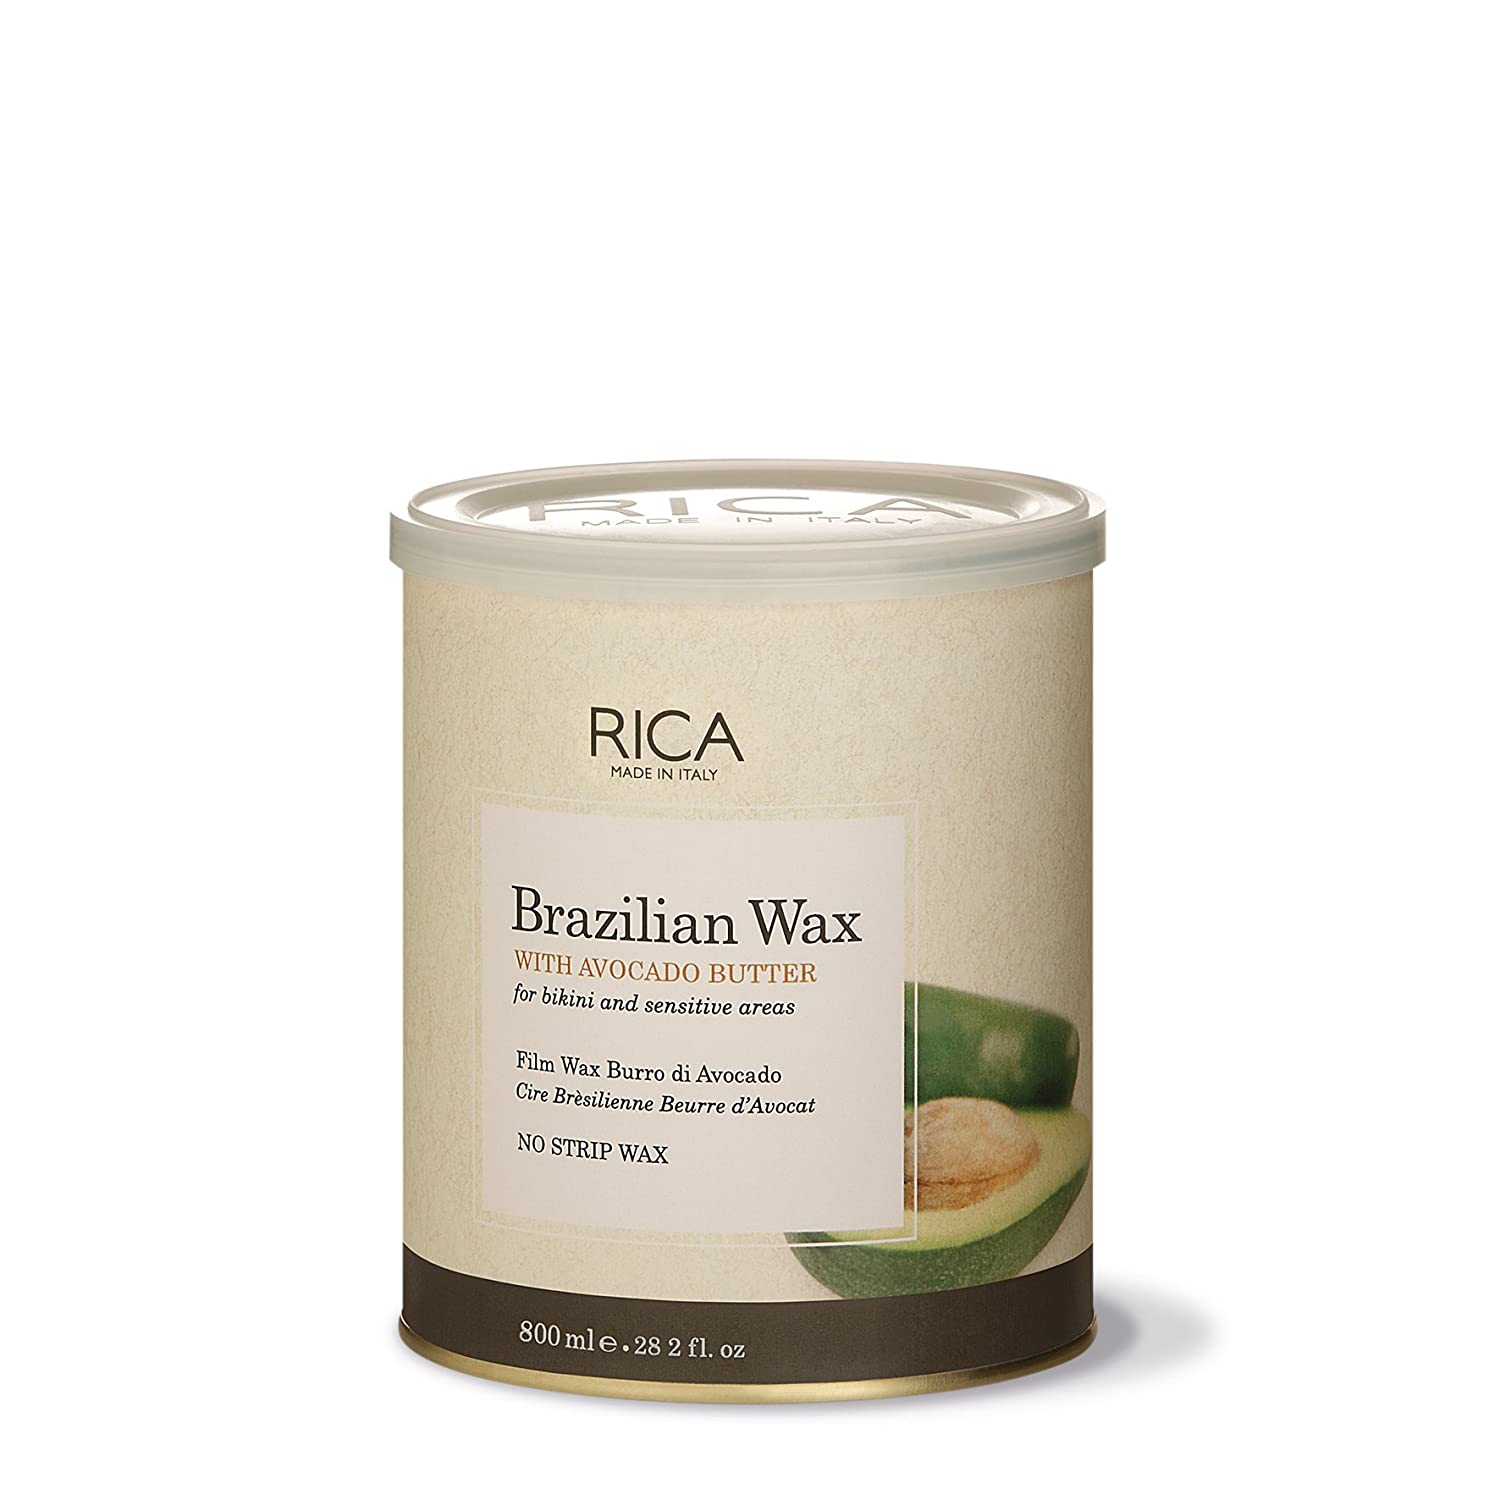 Rica Brazilian Wax with Avocado Butter for Bikini and Face, 28.2oz:  Amazon.in: Health & Personal Care